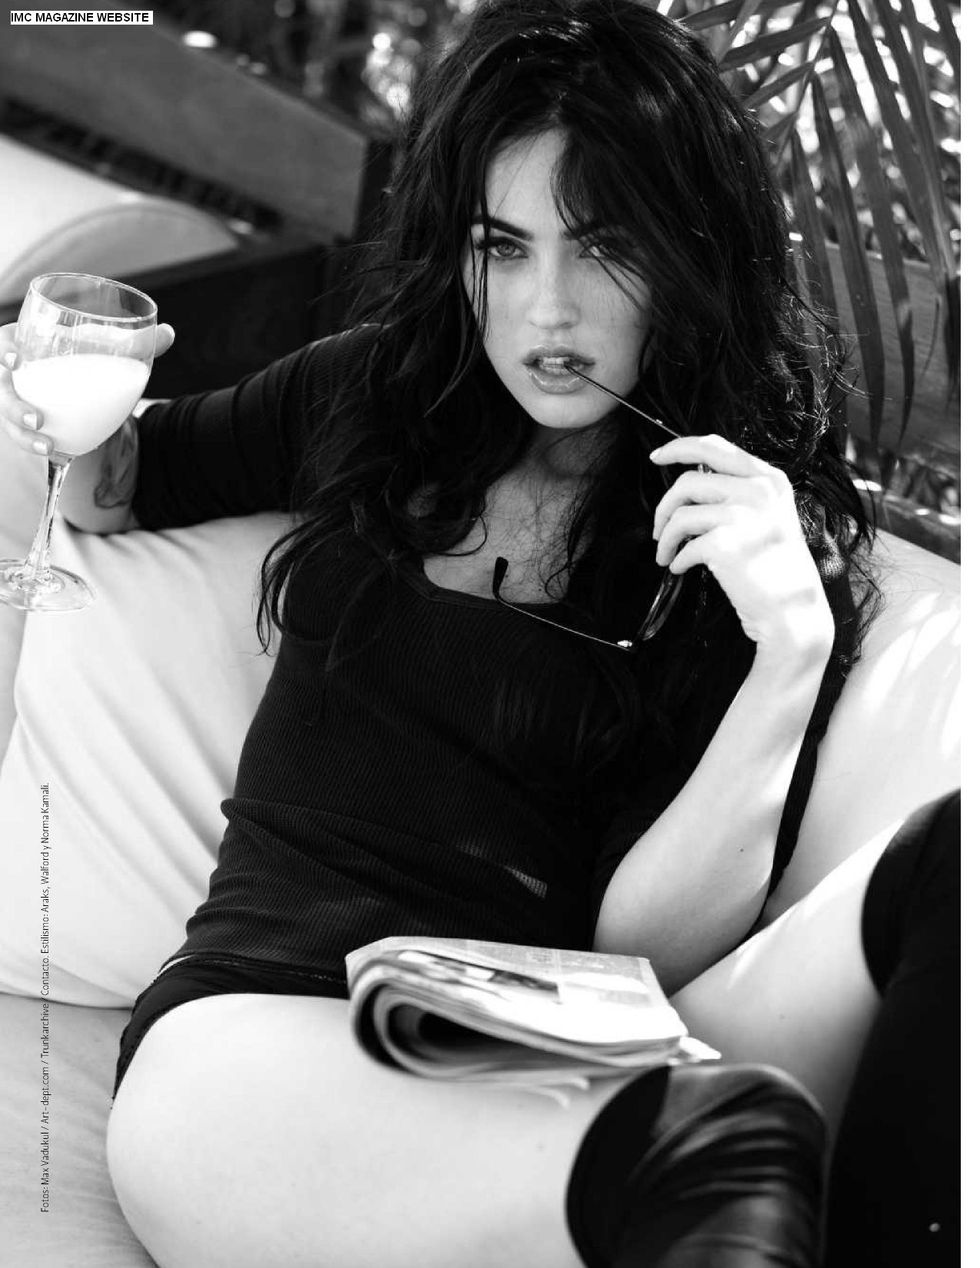 megan-fox-dt-magazine-april-2009-01